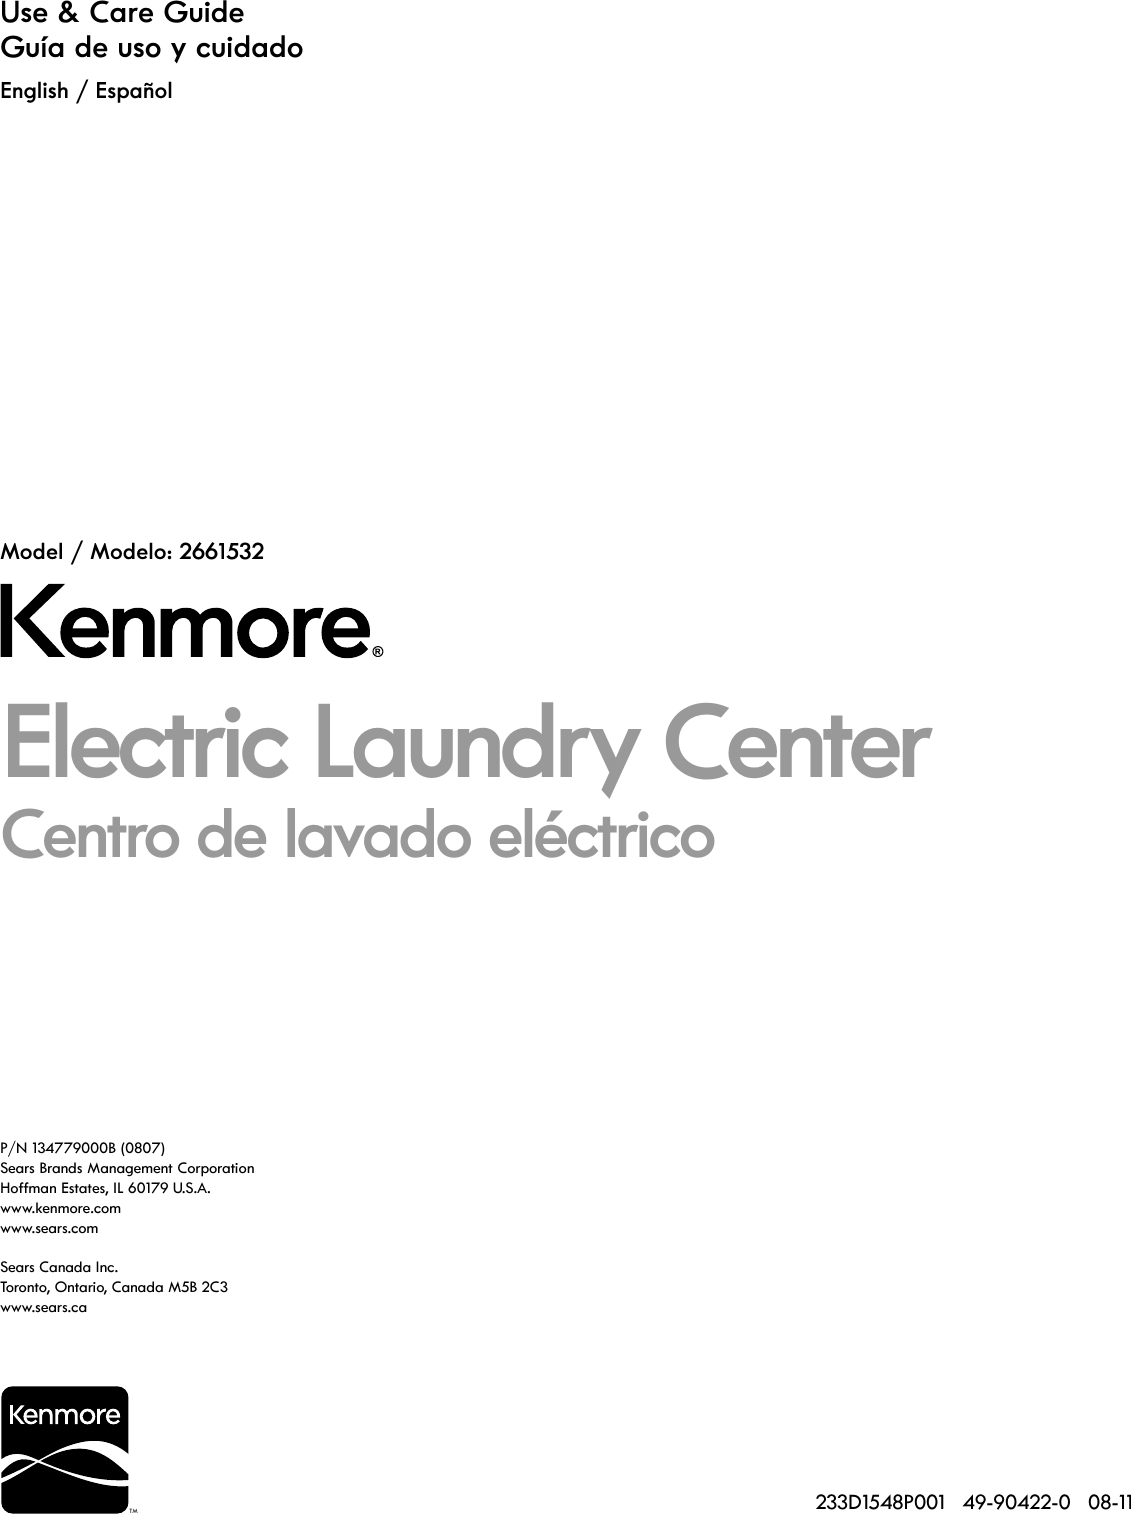 Kenmore 27 Laundry Center W Electric Dryer Specifications 2011.09.06 ...